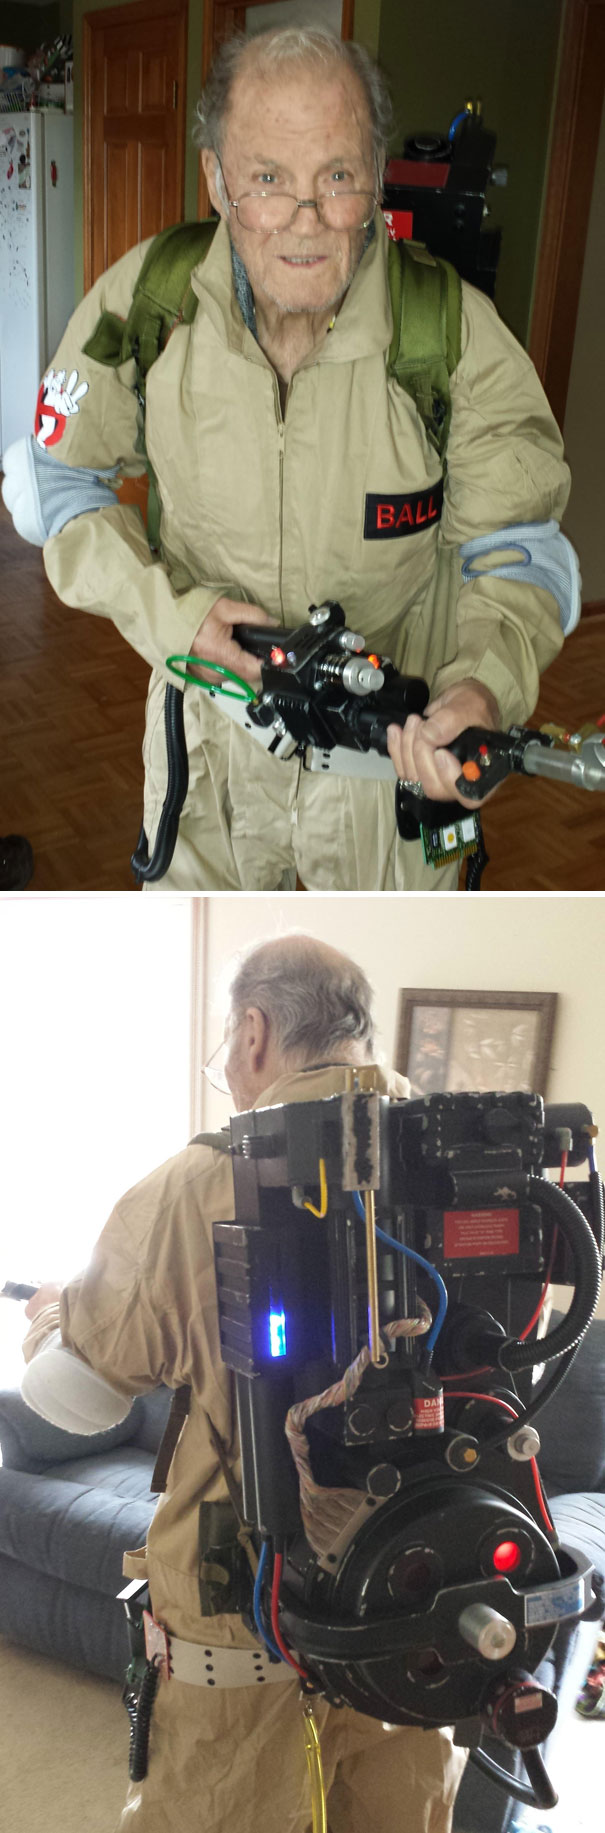 Bill Murray Said No One Wants To See Fat Old Guys Chase Ghosts. Grandpa Is Proving That Statement To Be False Yet Again